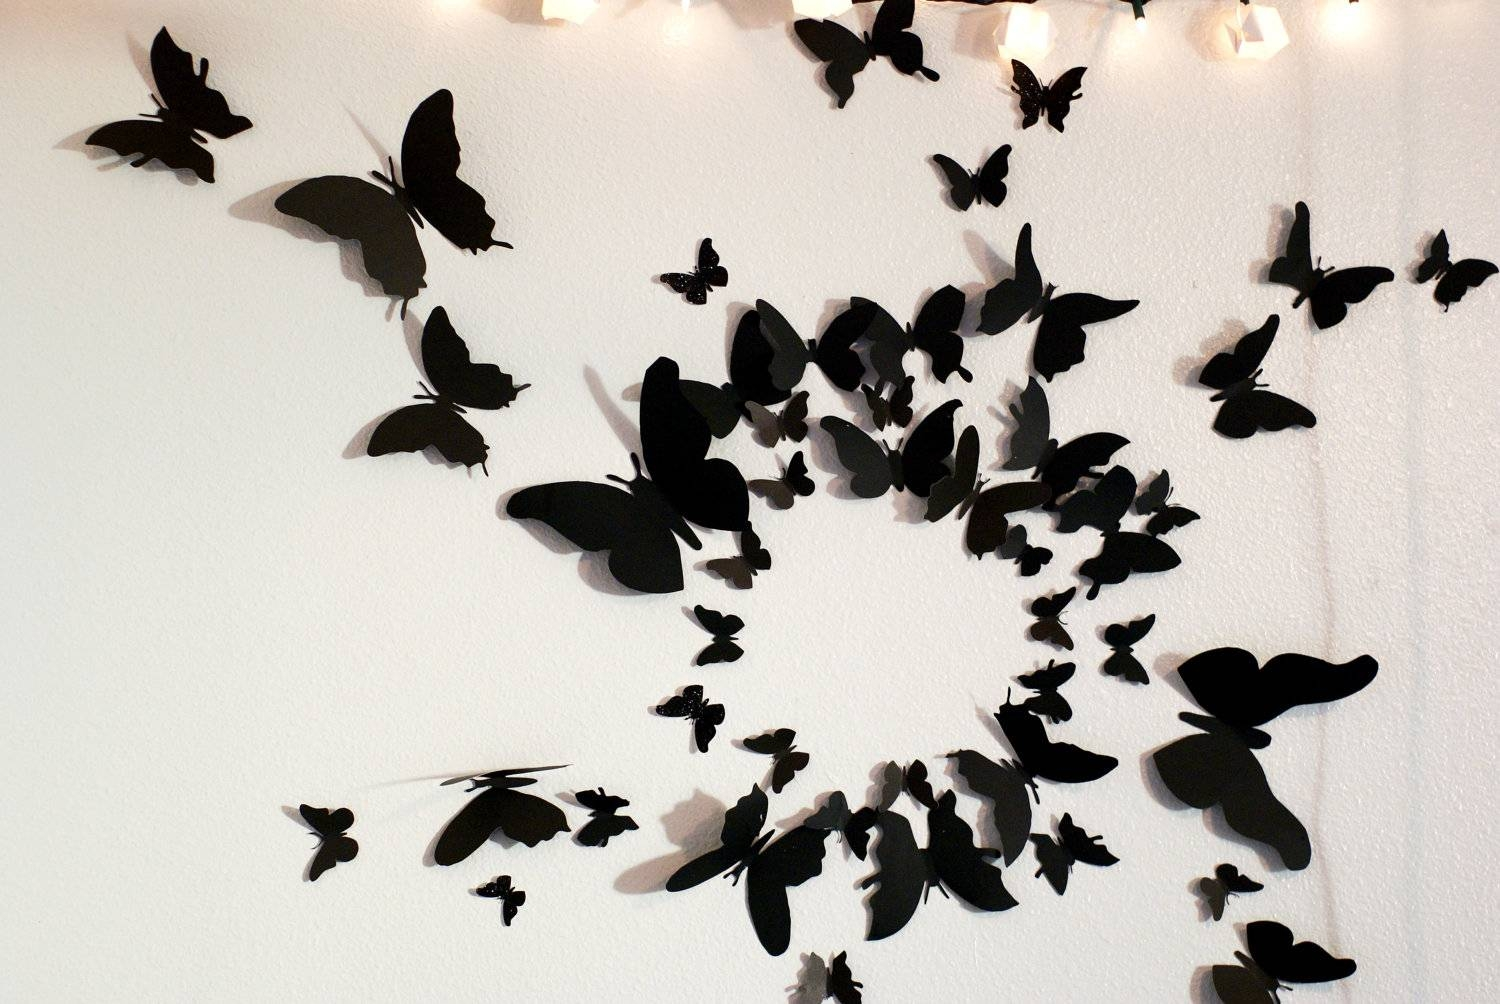 3d Butterfly Wall Art South Africa | Wallartideas Within Latest South Africa Wall Art 3d (View 7 of 20)